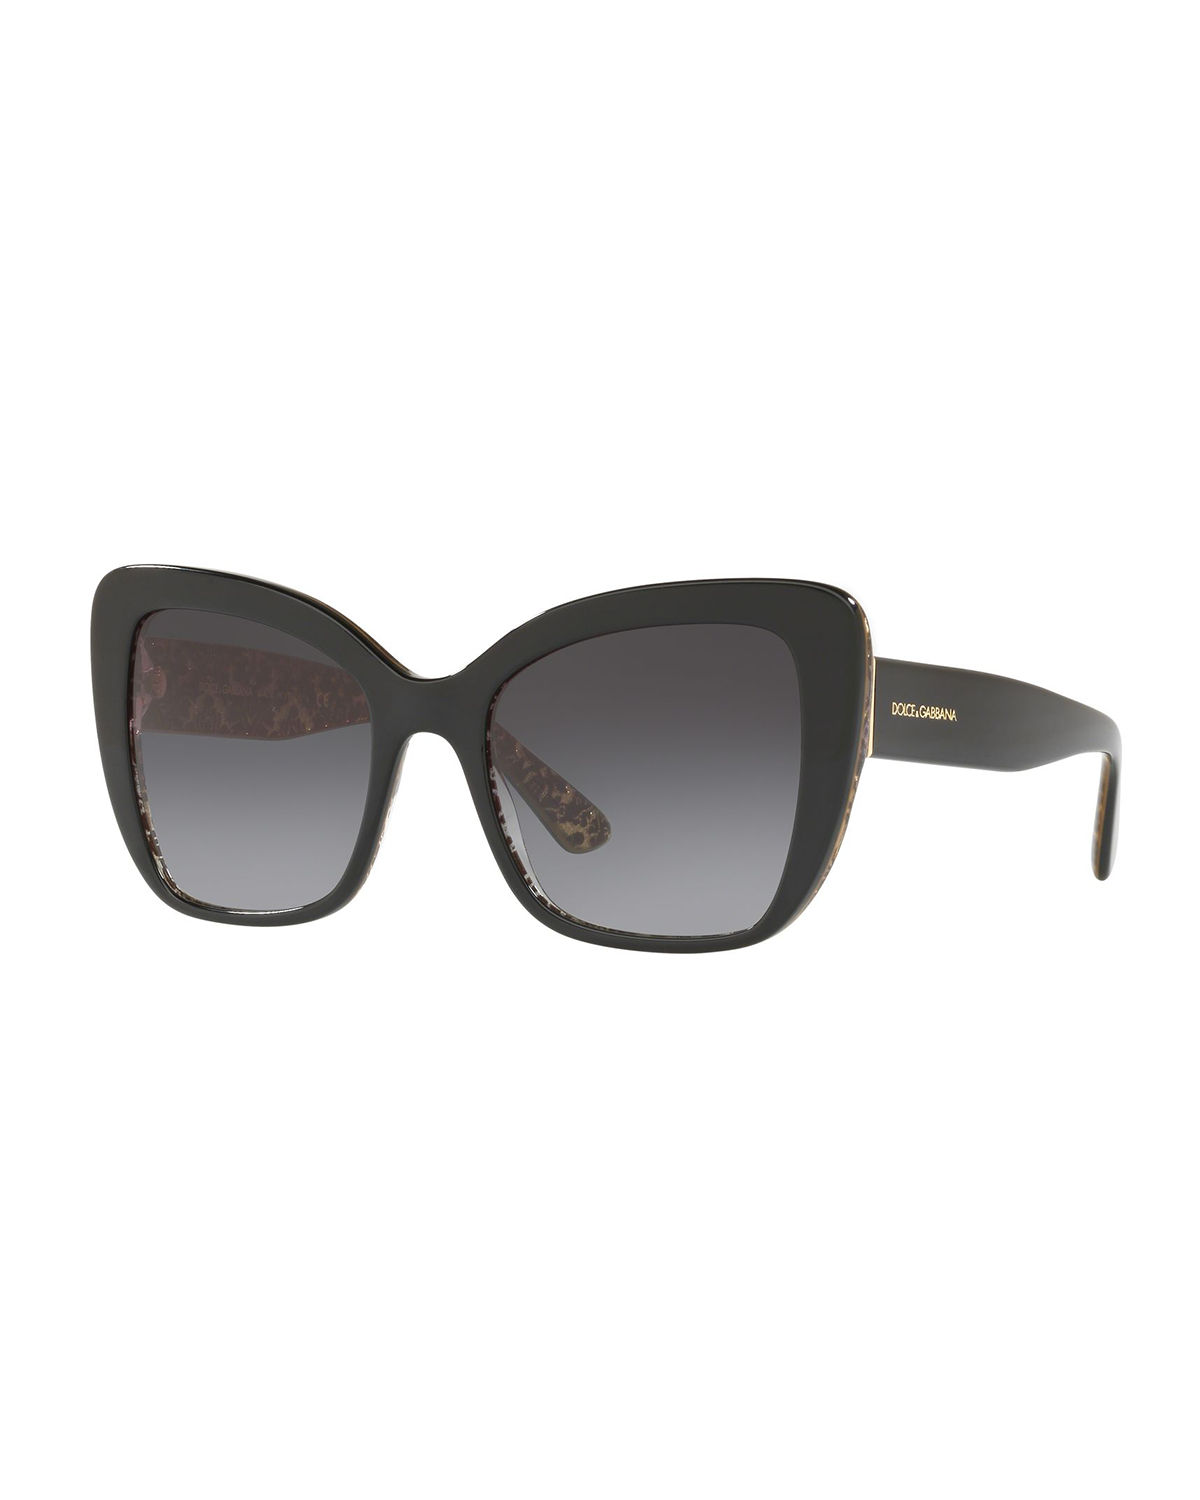 1f52134fbc Dolce   Gabbana Acetate Butterfly Sunglasses